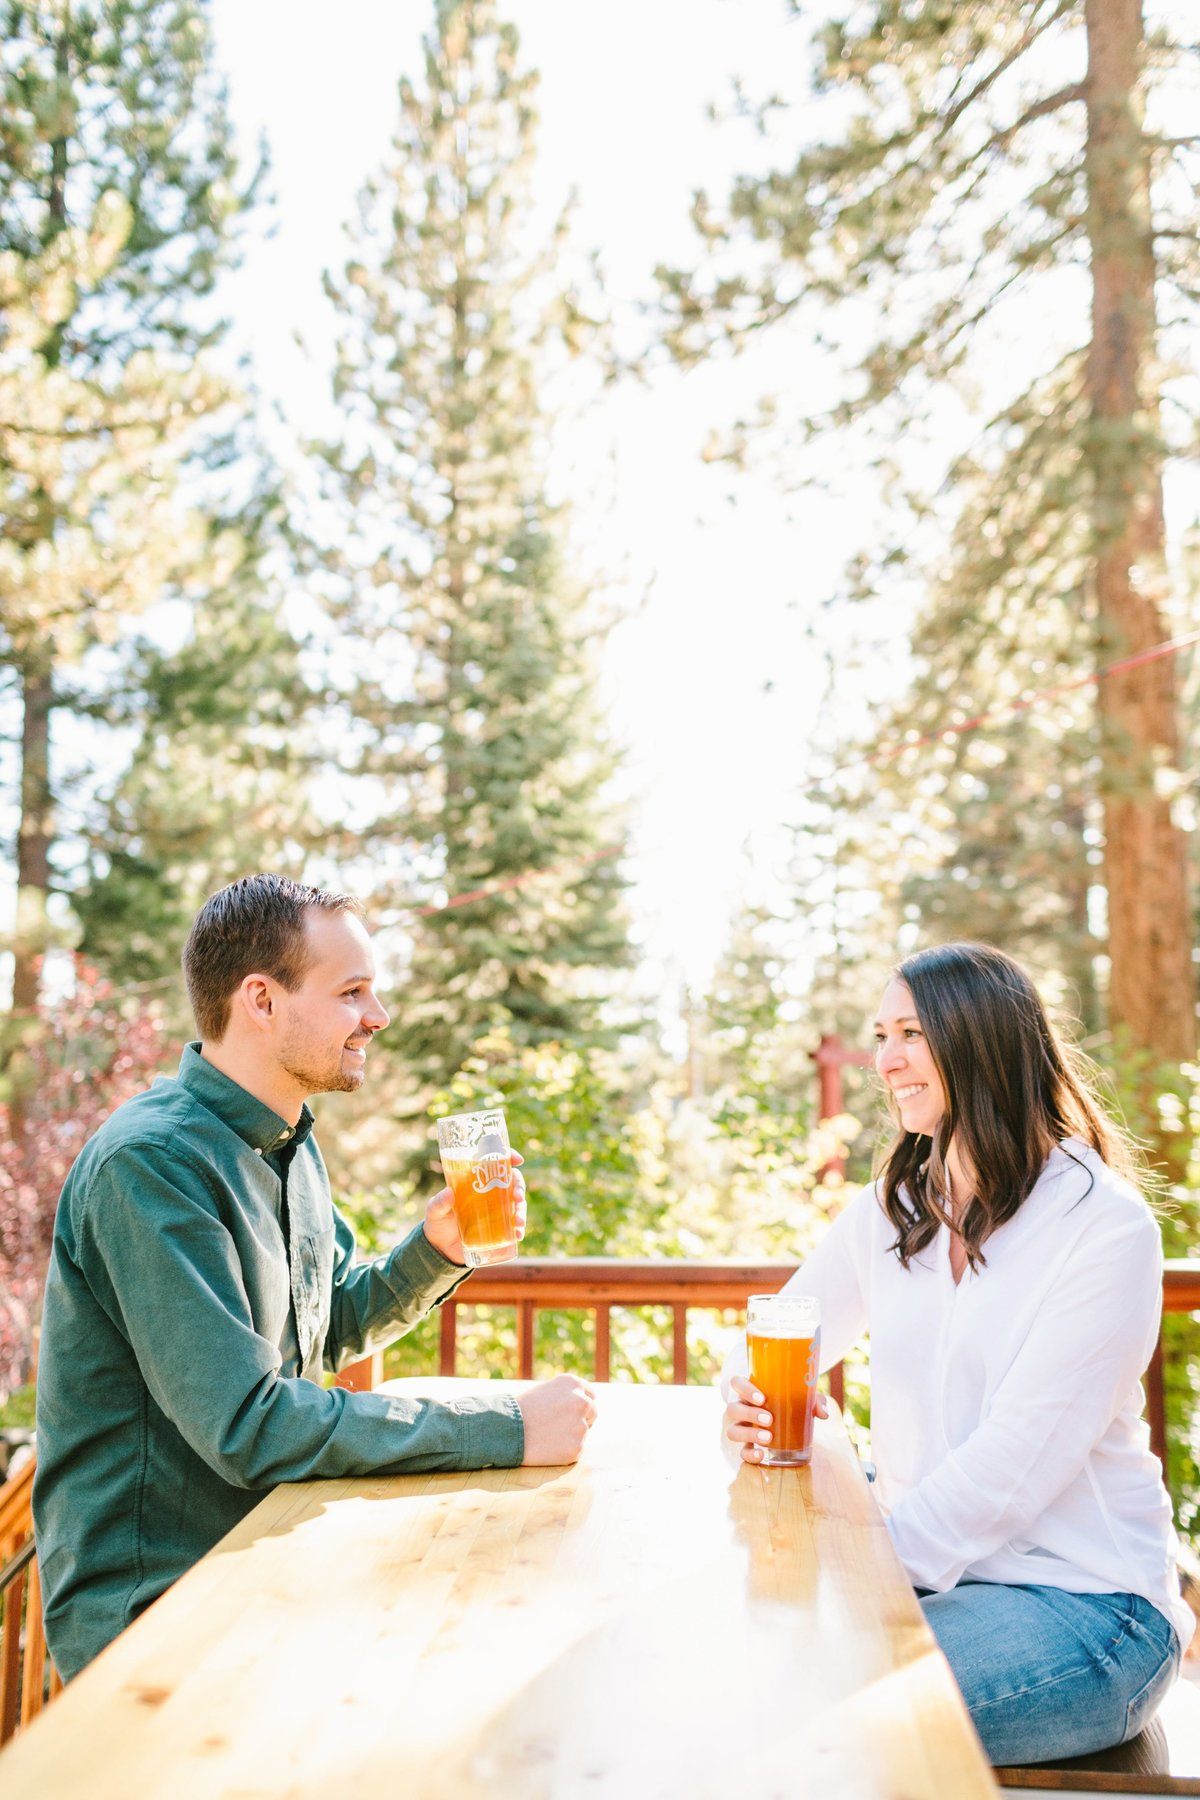 Best California Engagement Photographer-Jodee Debes Photography-189